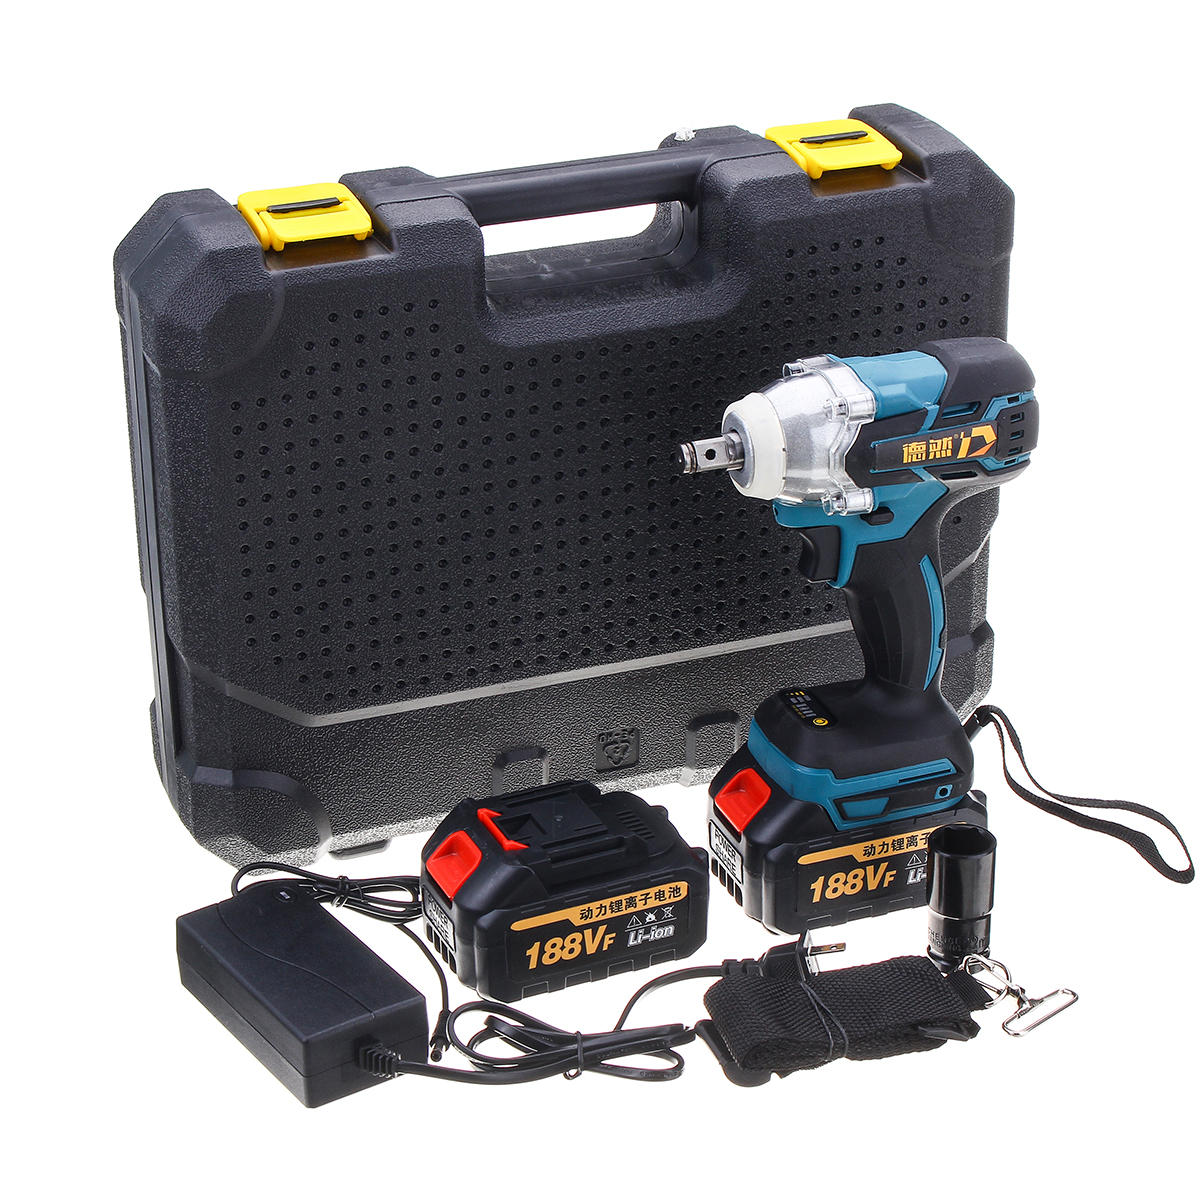 188VF 6000mAh 380N.m Lithium-Ion Battery Electric Cordless Impact Wrench Drill Driver Kit Power Tools